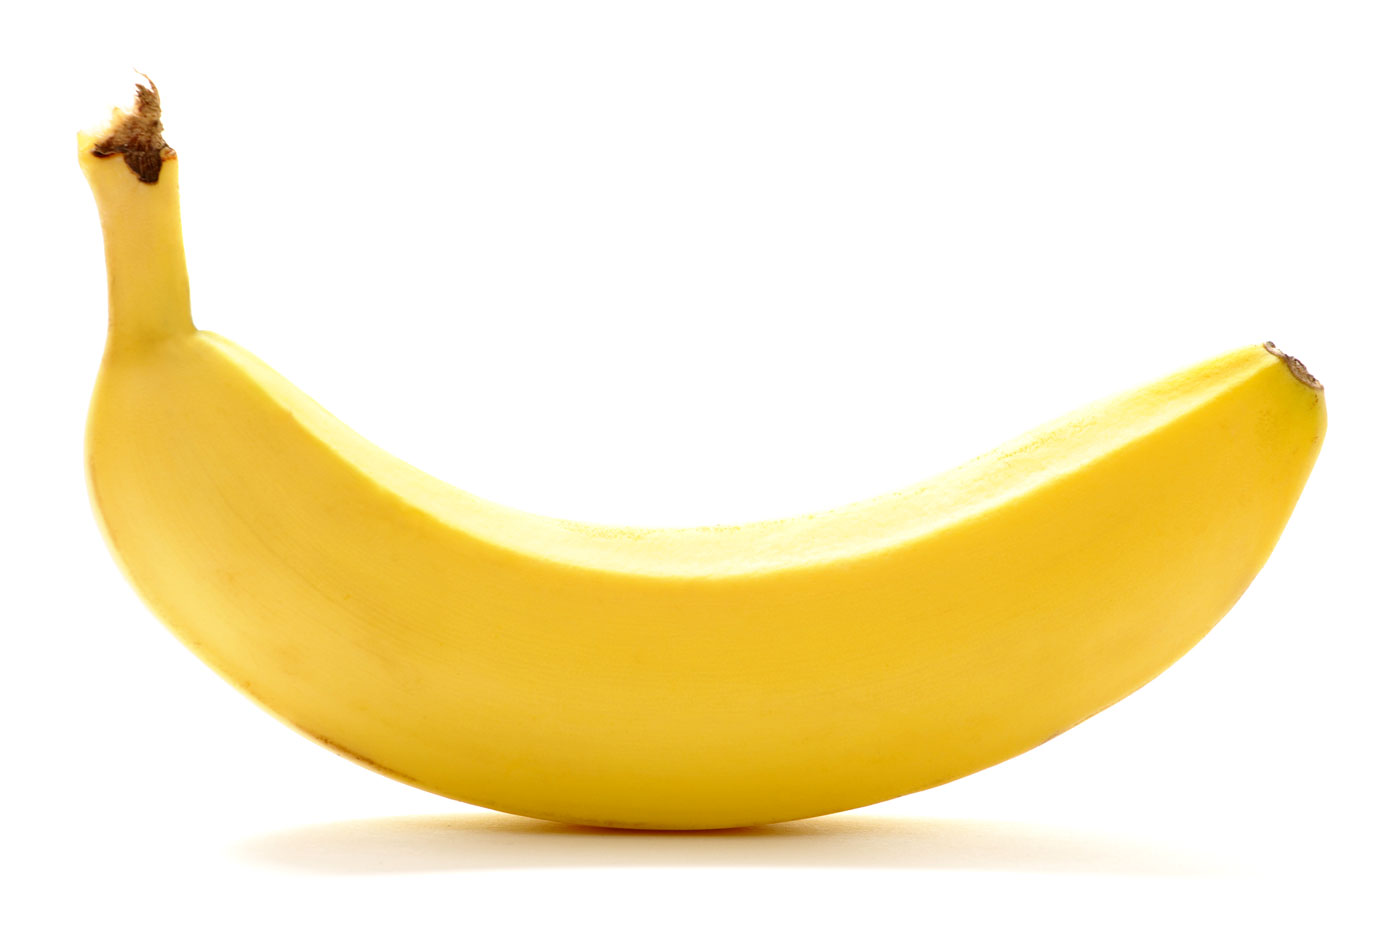 Bananas are loaded with micronutrients